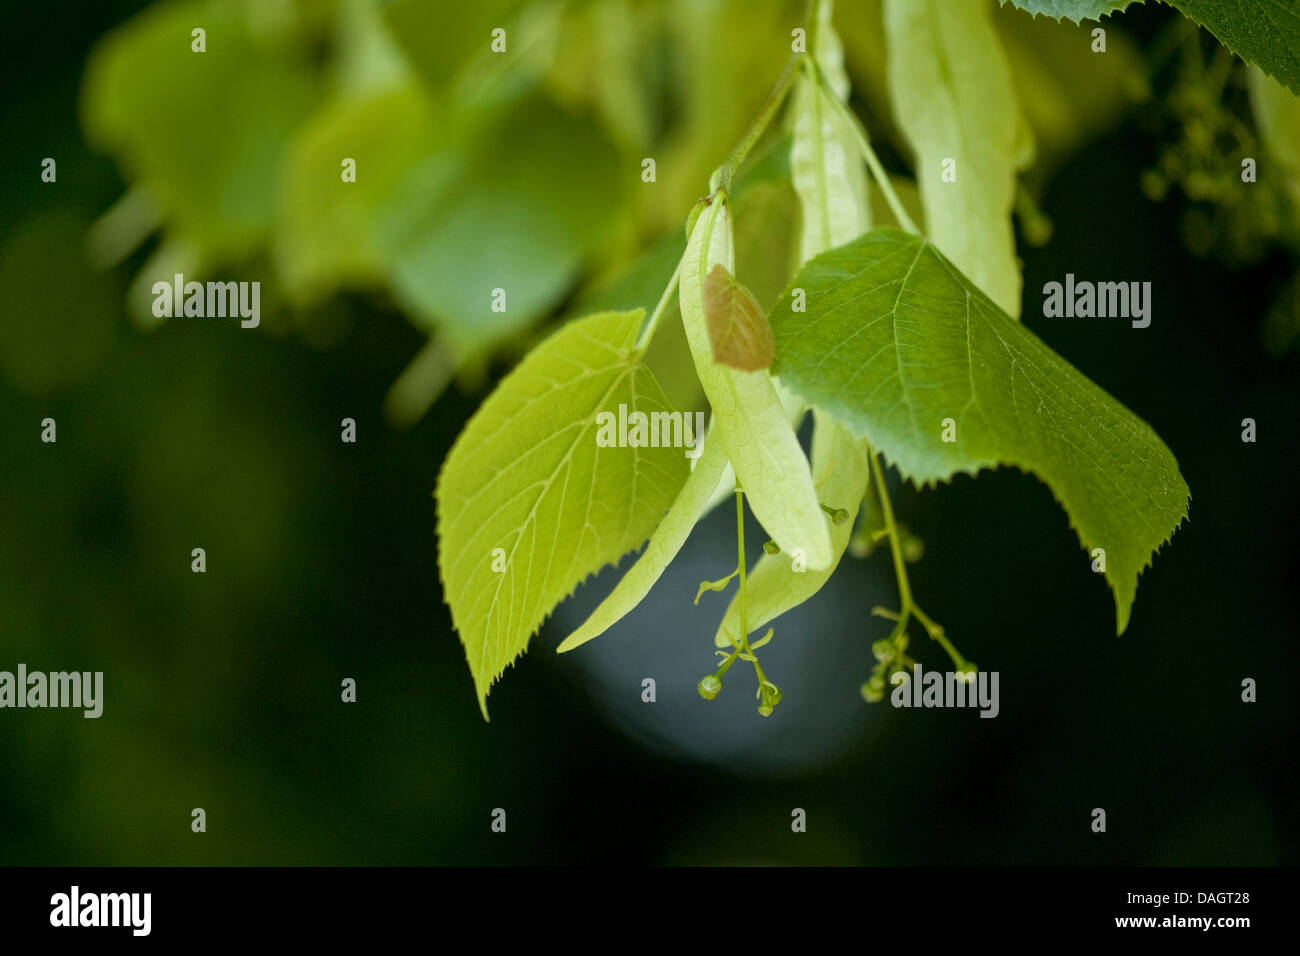 large-leaved lime, lime tree (Tilia platyphyllos), twig with young fruits, Germany Stock Photo